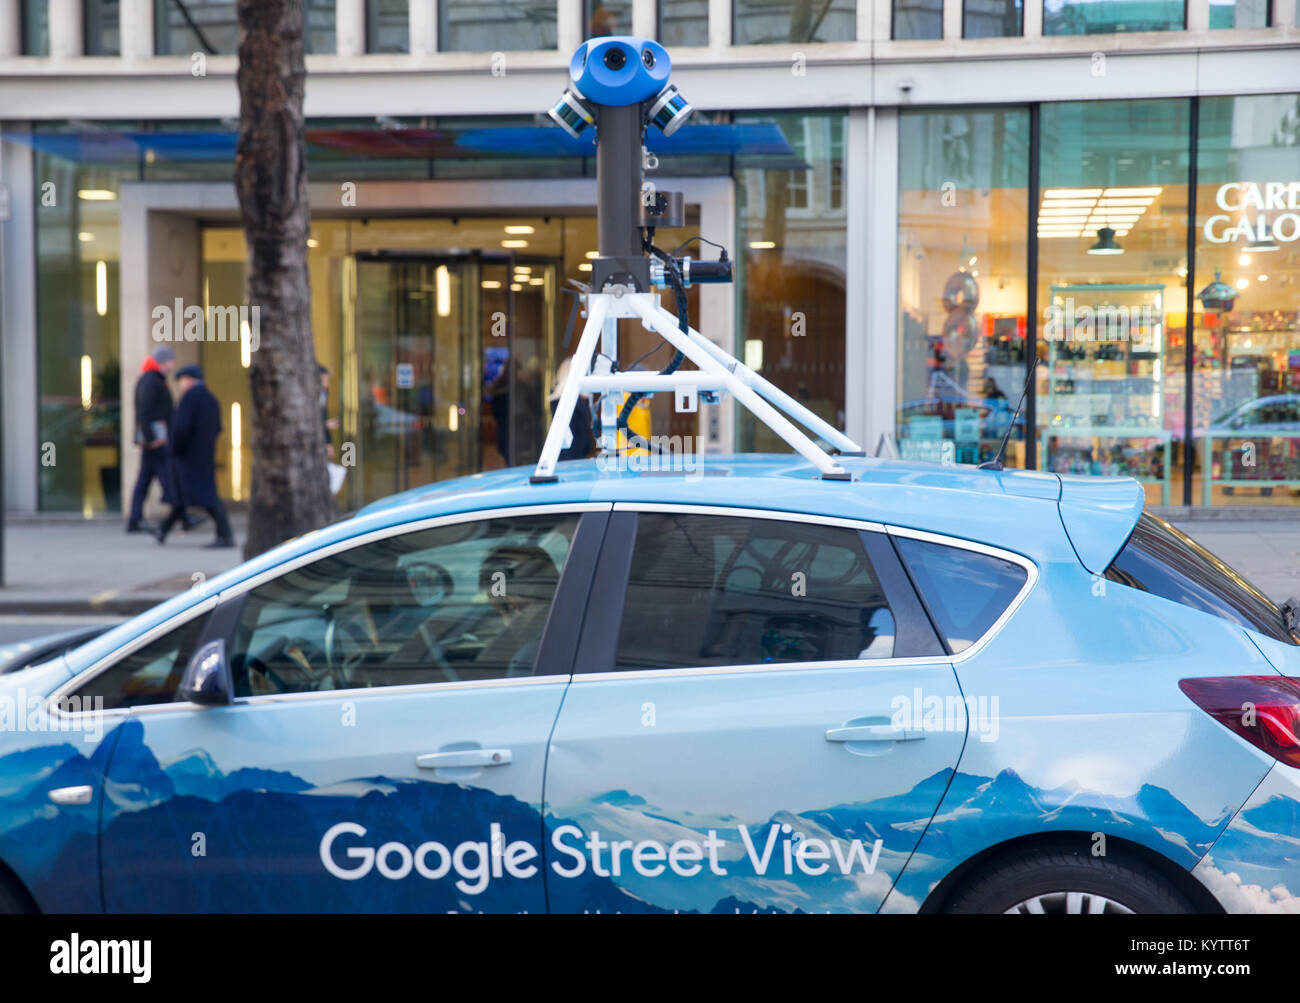 a google earth street view car mounted with a 360 degree camera